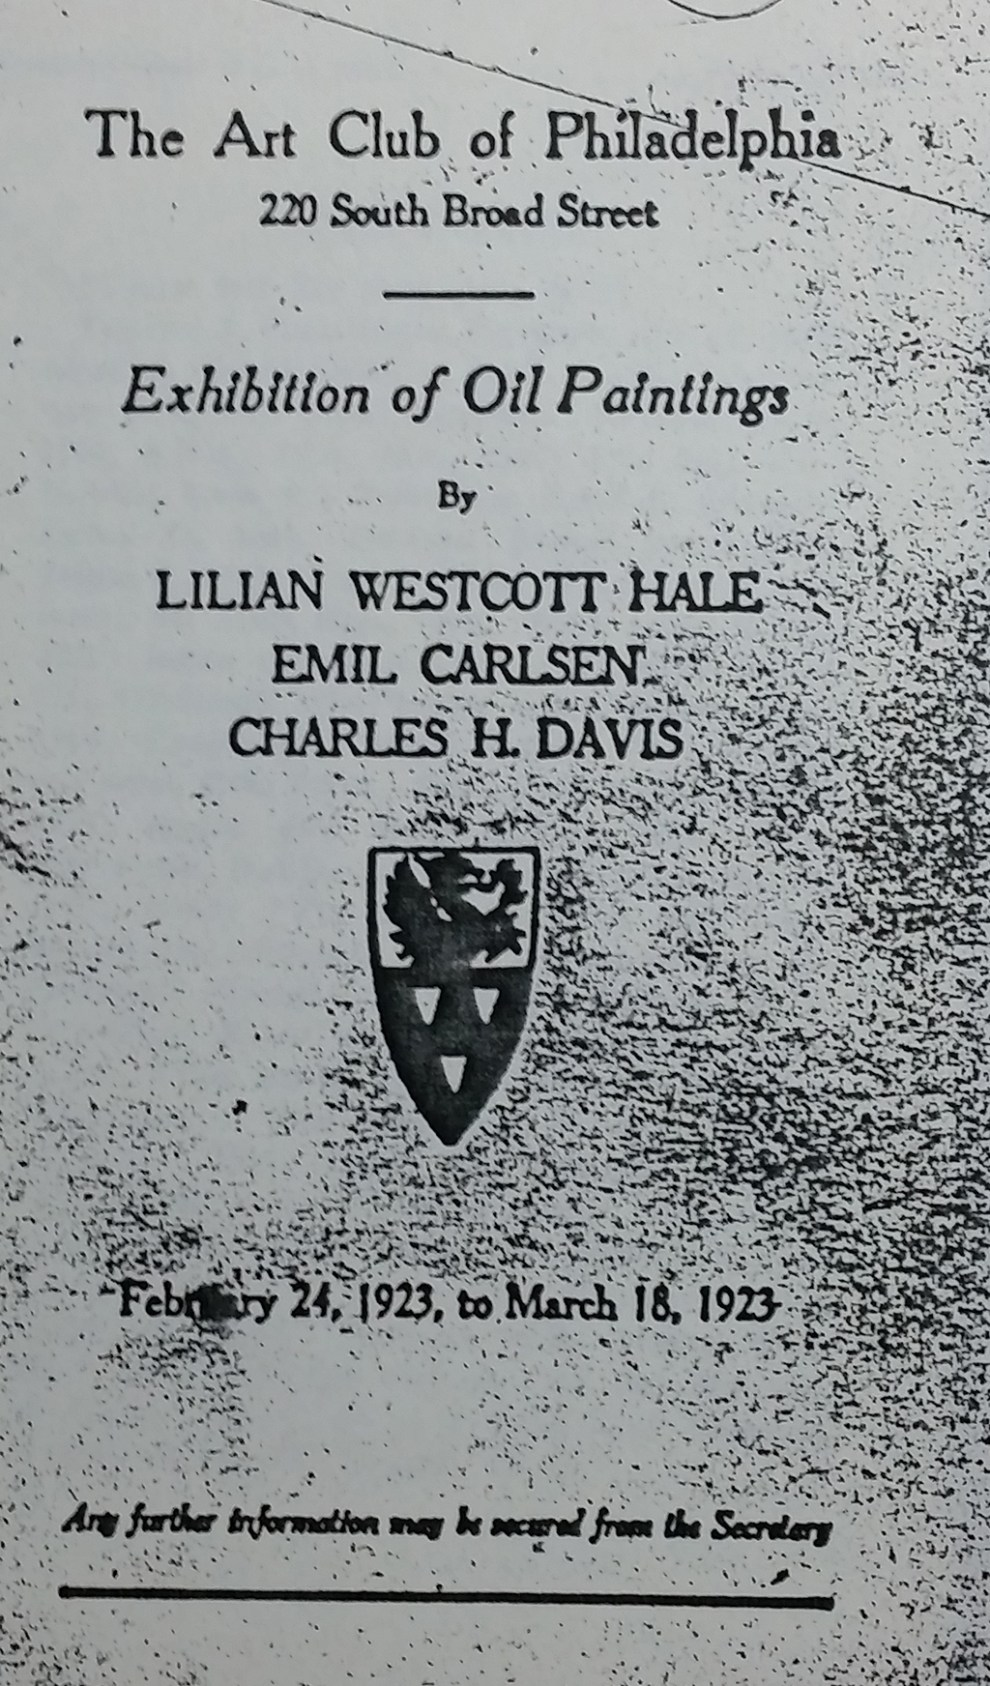 "1923 The Art Club of Philadelphia, Philadelphia, PA, ""Exhibition of Oil Paintings by Lilian Westcott Hale, Emil Carlsen, Charles H. Davis"", February 24 - March 18"